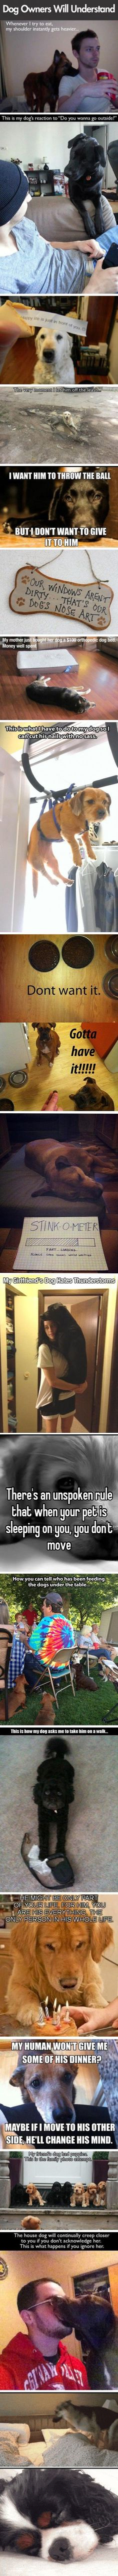 If you own a dog, then you can identify with these…